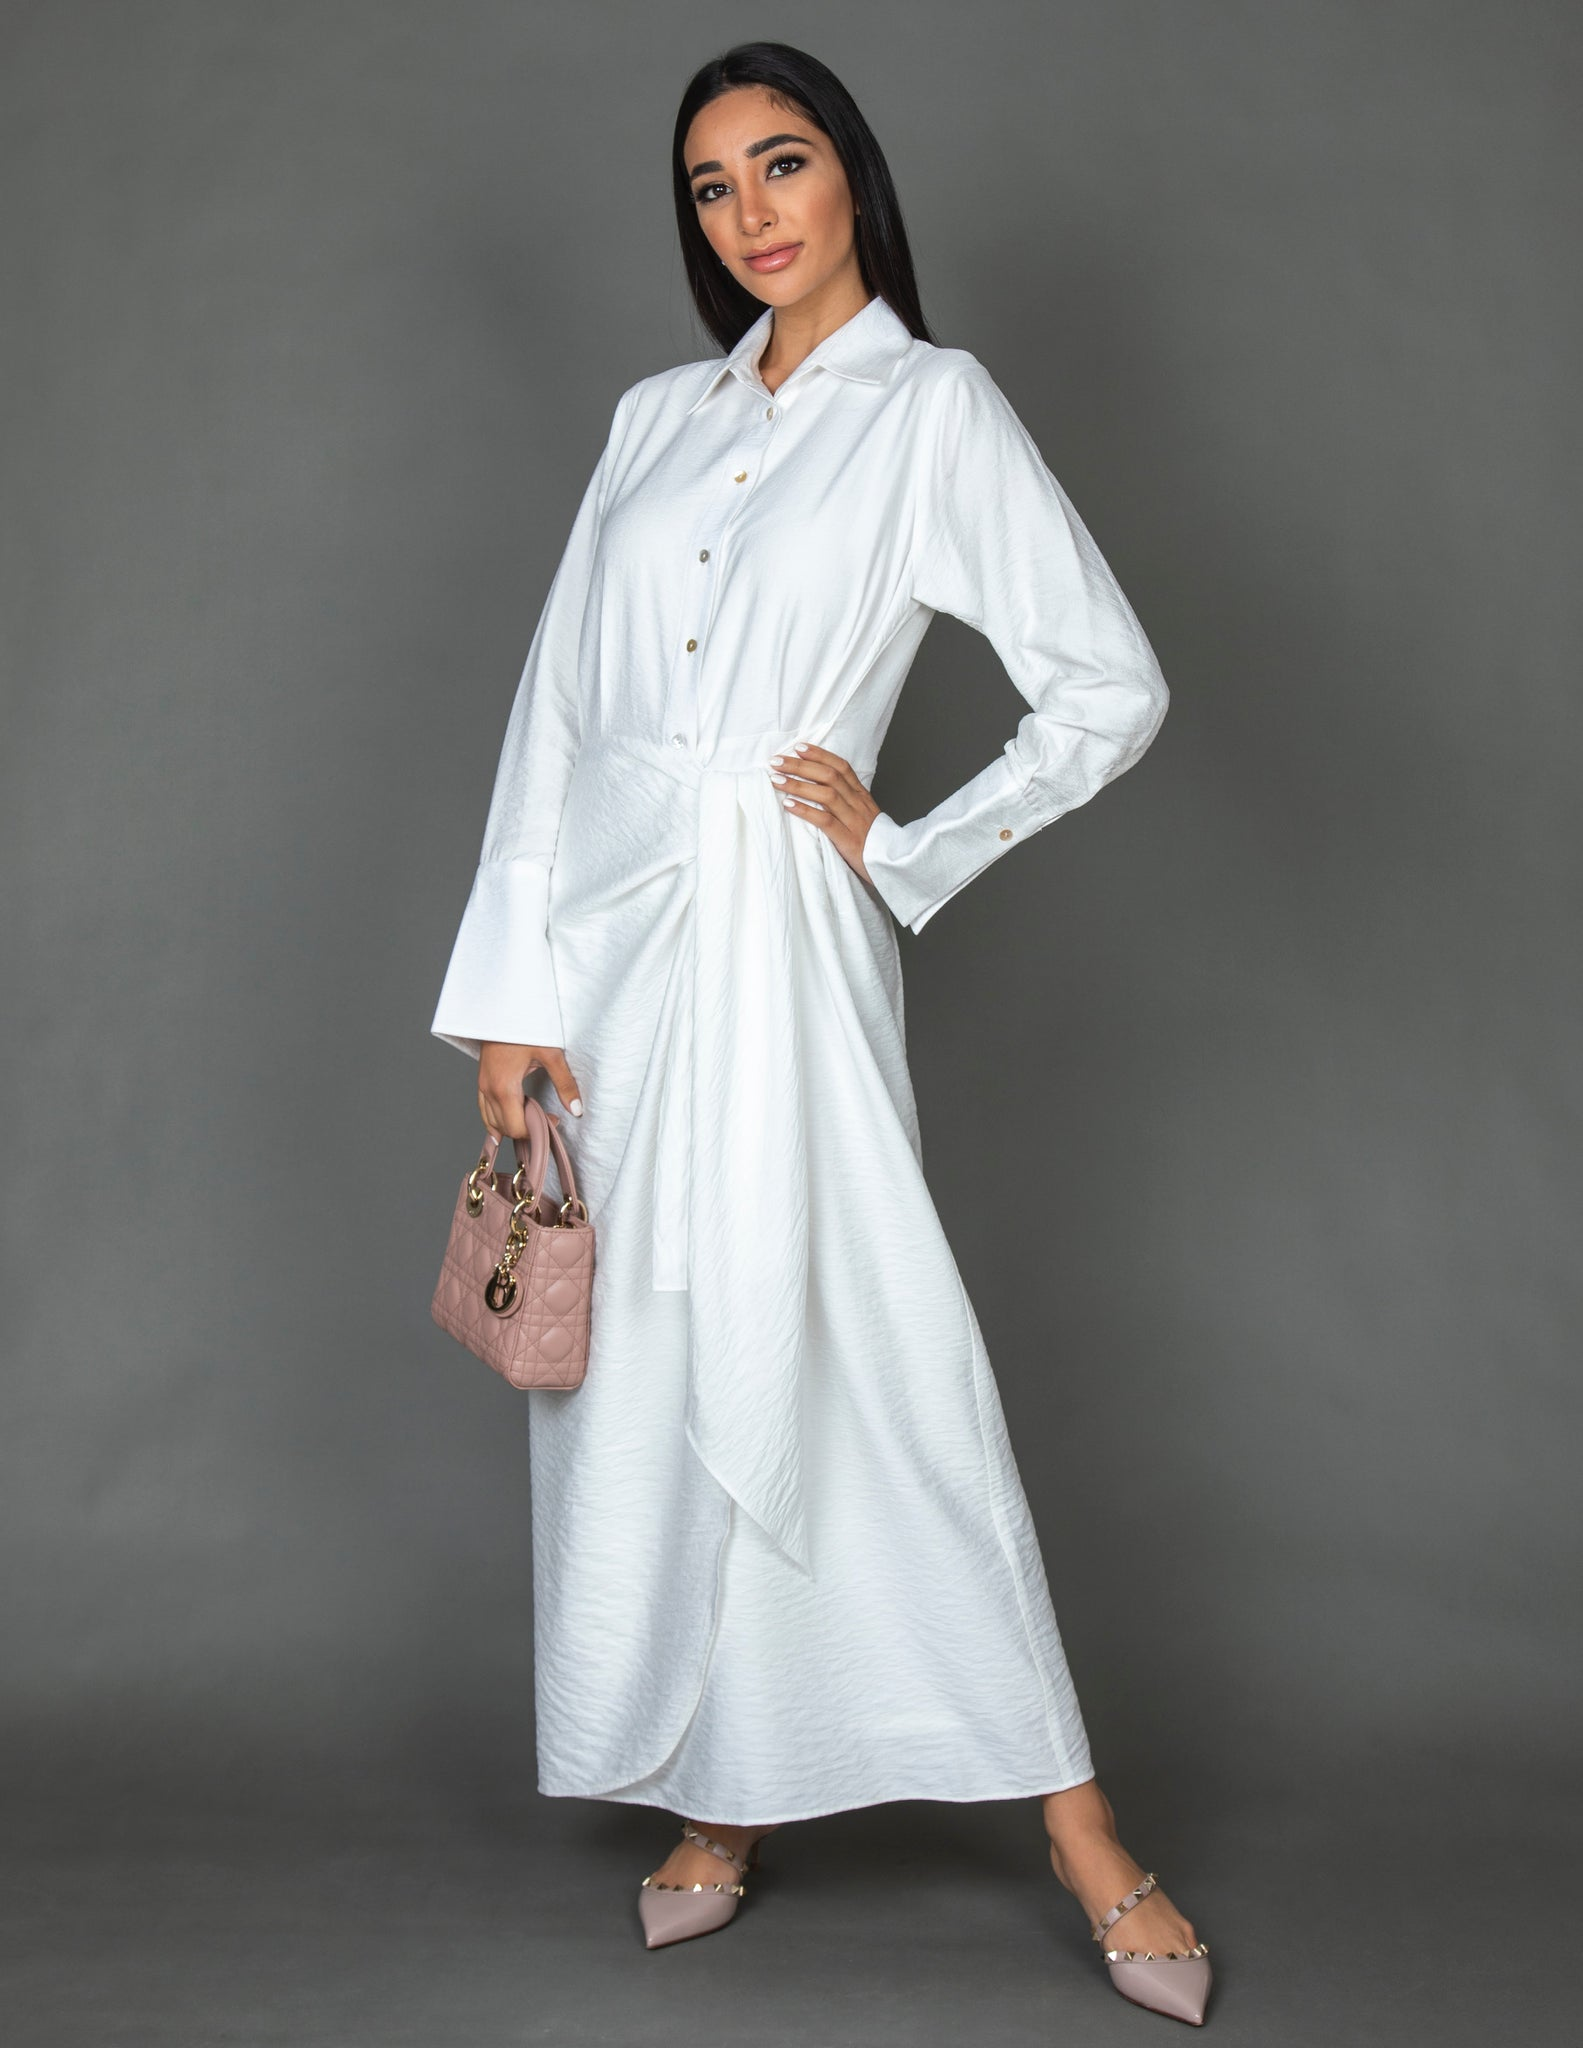 SS20 LINEN SHIRT DRESS WITH WRAP & TIE